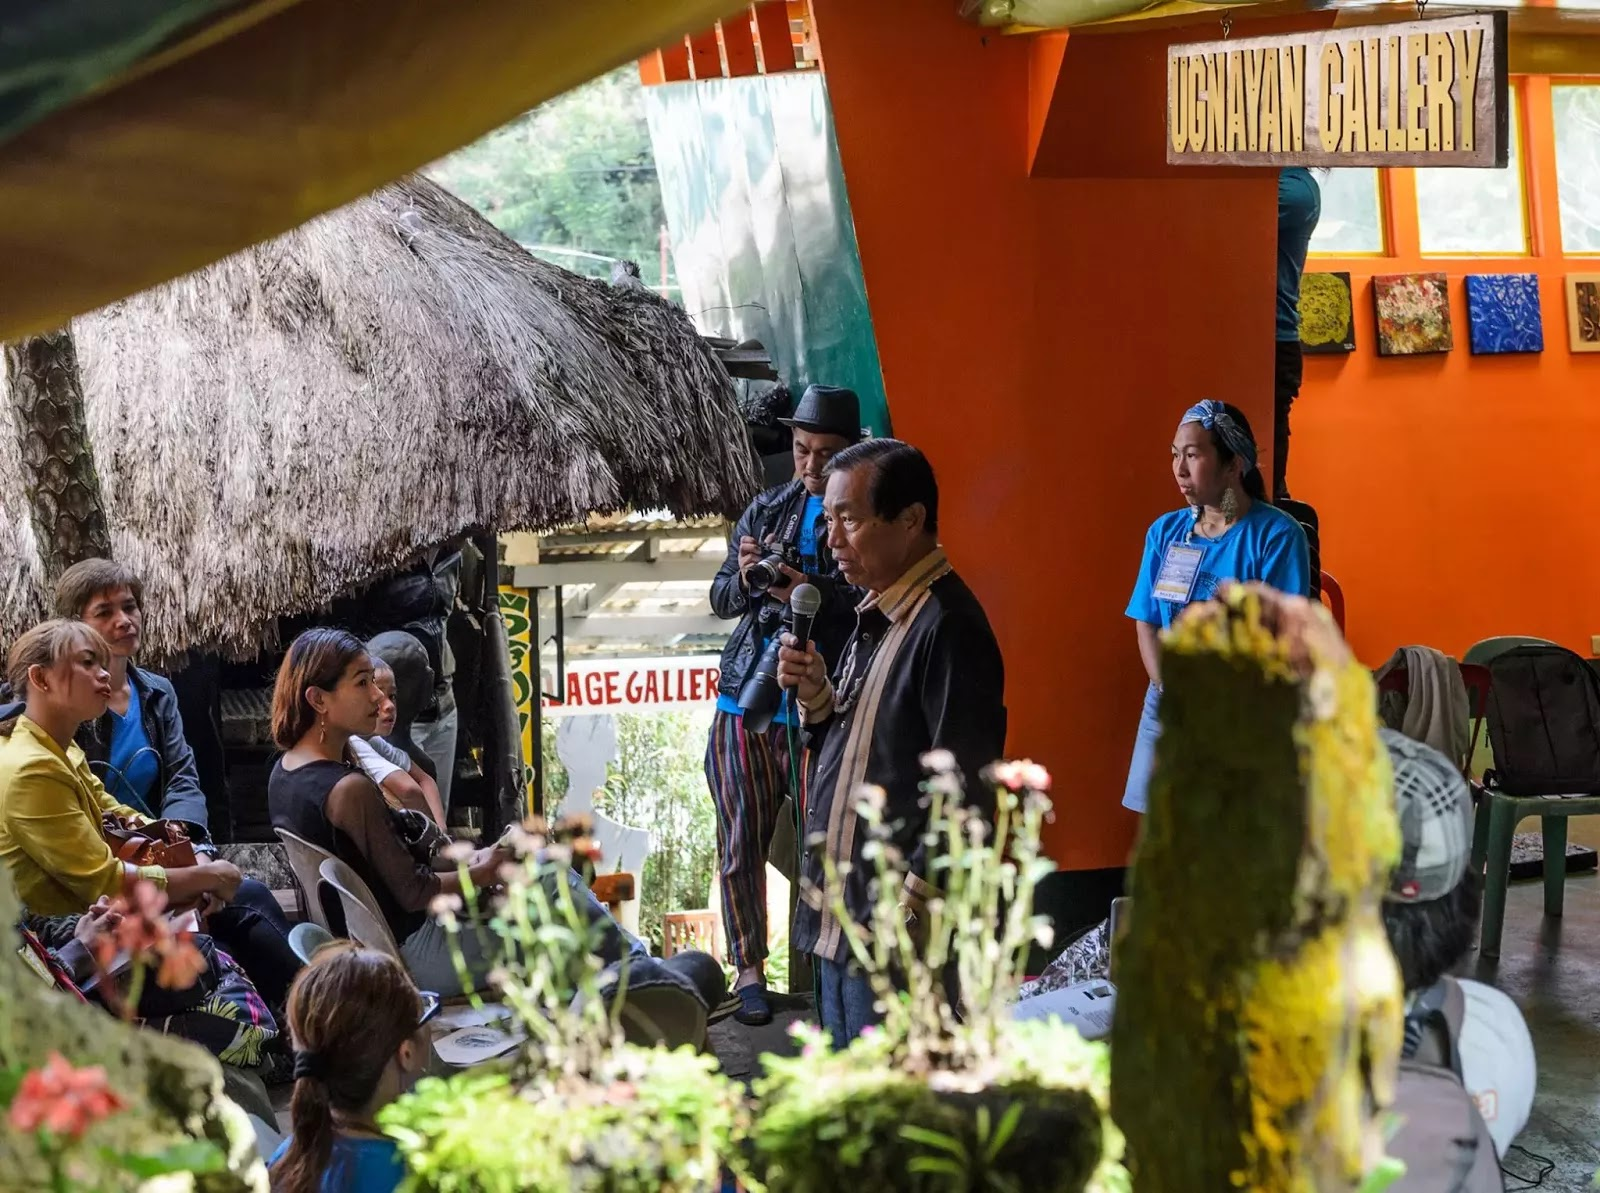 International Arts Festival 8th Tam-awan Baguio City Philippines Keeping the Stones Rolling Opening Ceremonies Honorable Baguio City Mayor Mauricio G. Domogan Addressing Festival Participants Guests Artisits Media